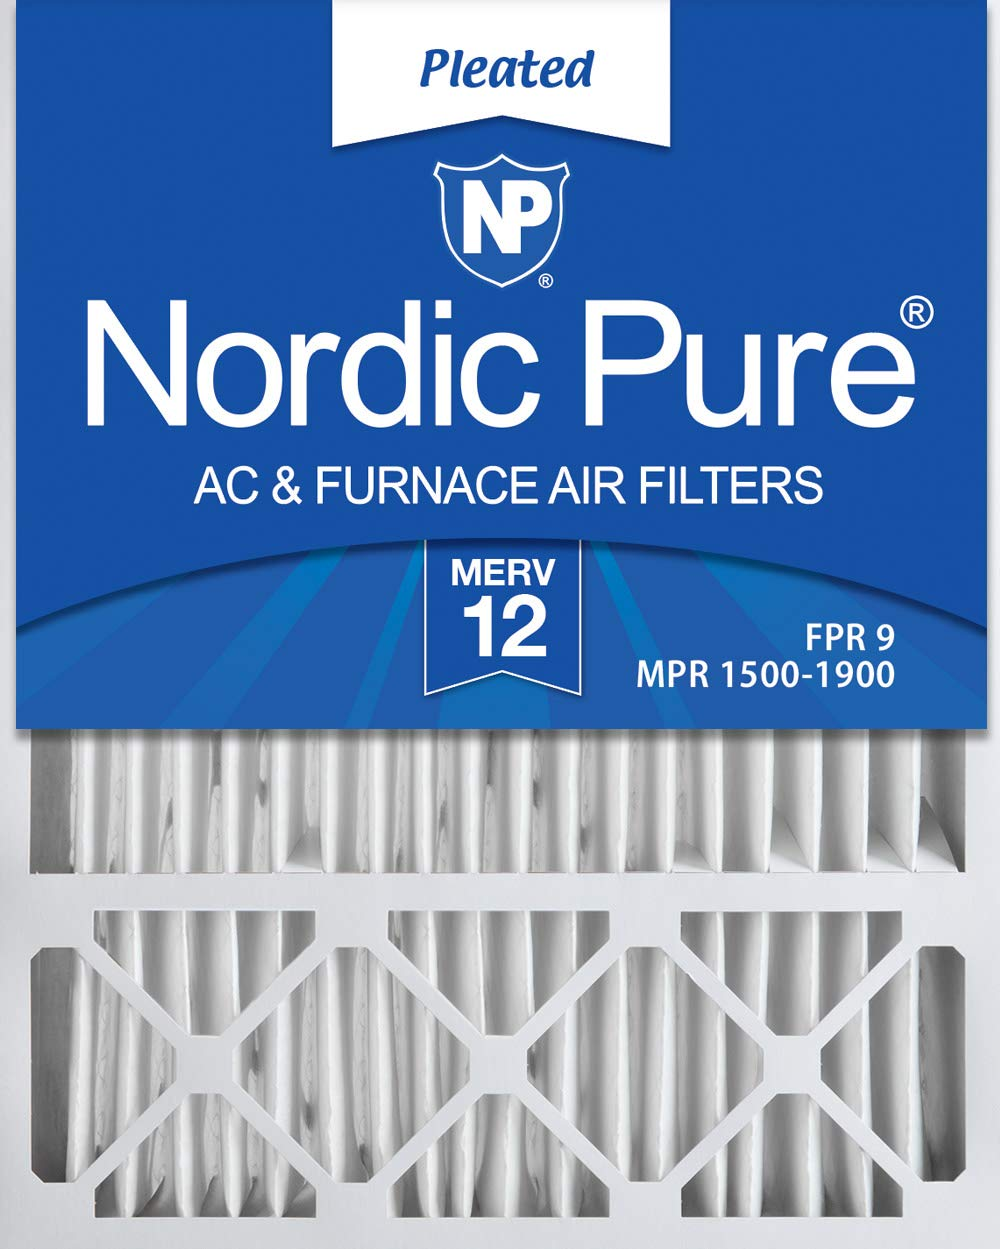 Nordic Pure 20x25x4/20x25x5 (19 7/8 x 24 7/8 x 4 3/8) Honeywell FC100A1037 Replacement Pleated AC Furnace Air Filters MERV 12, Box of 2 by Nordic Pure